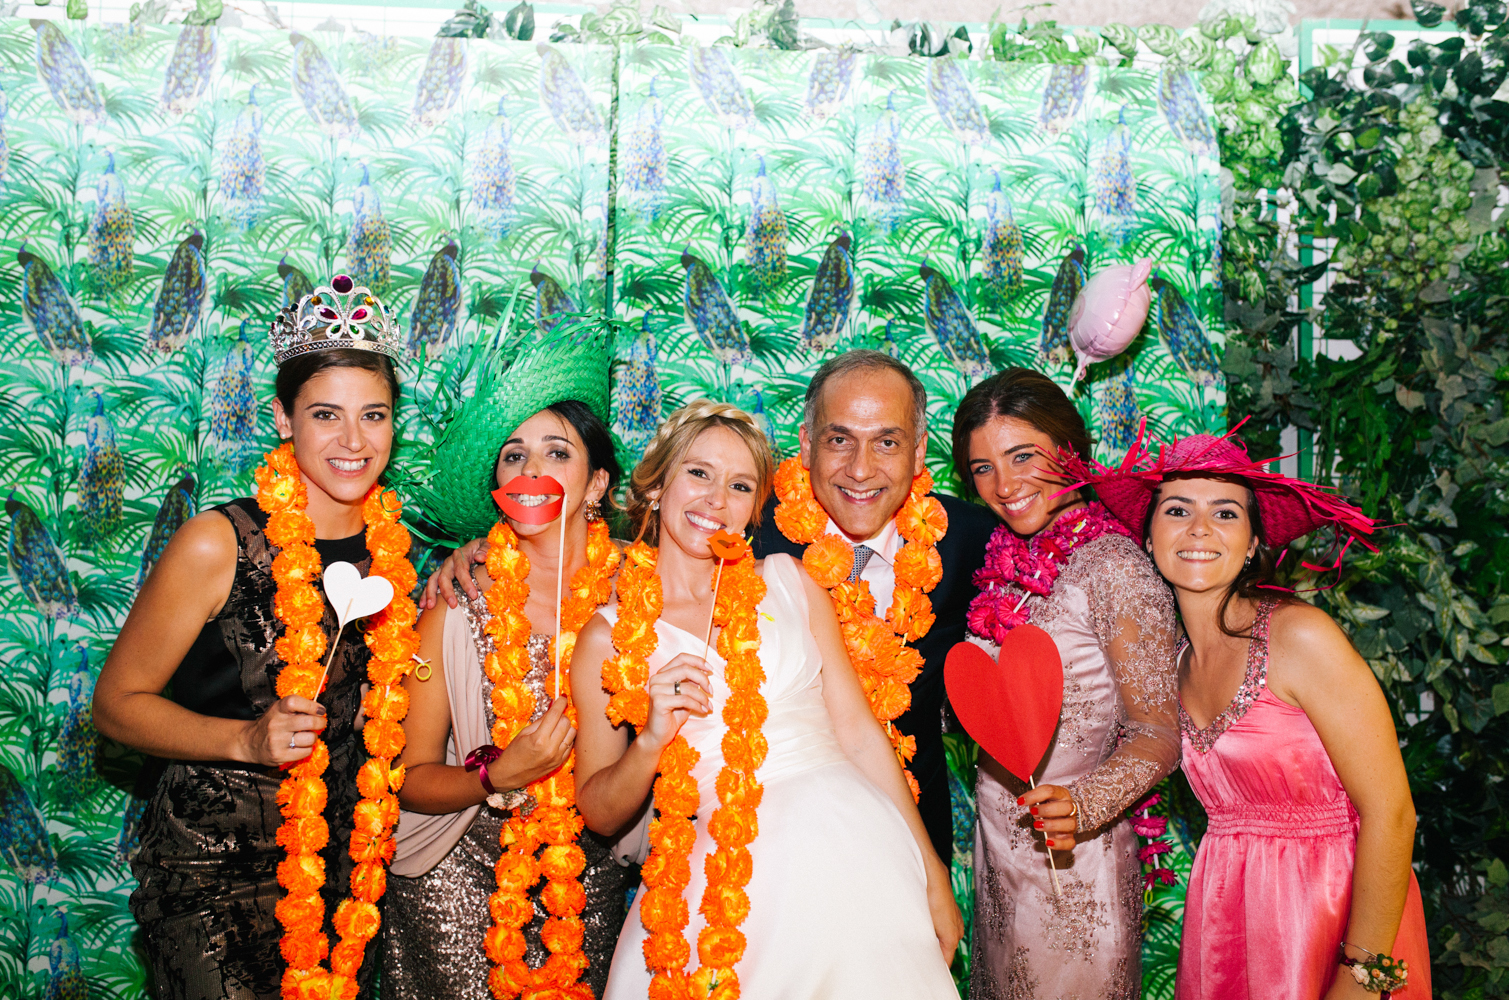 maria_rao_wedding_photographer_Portugal-192.jpg